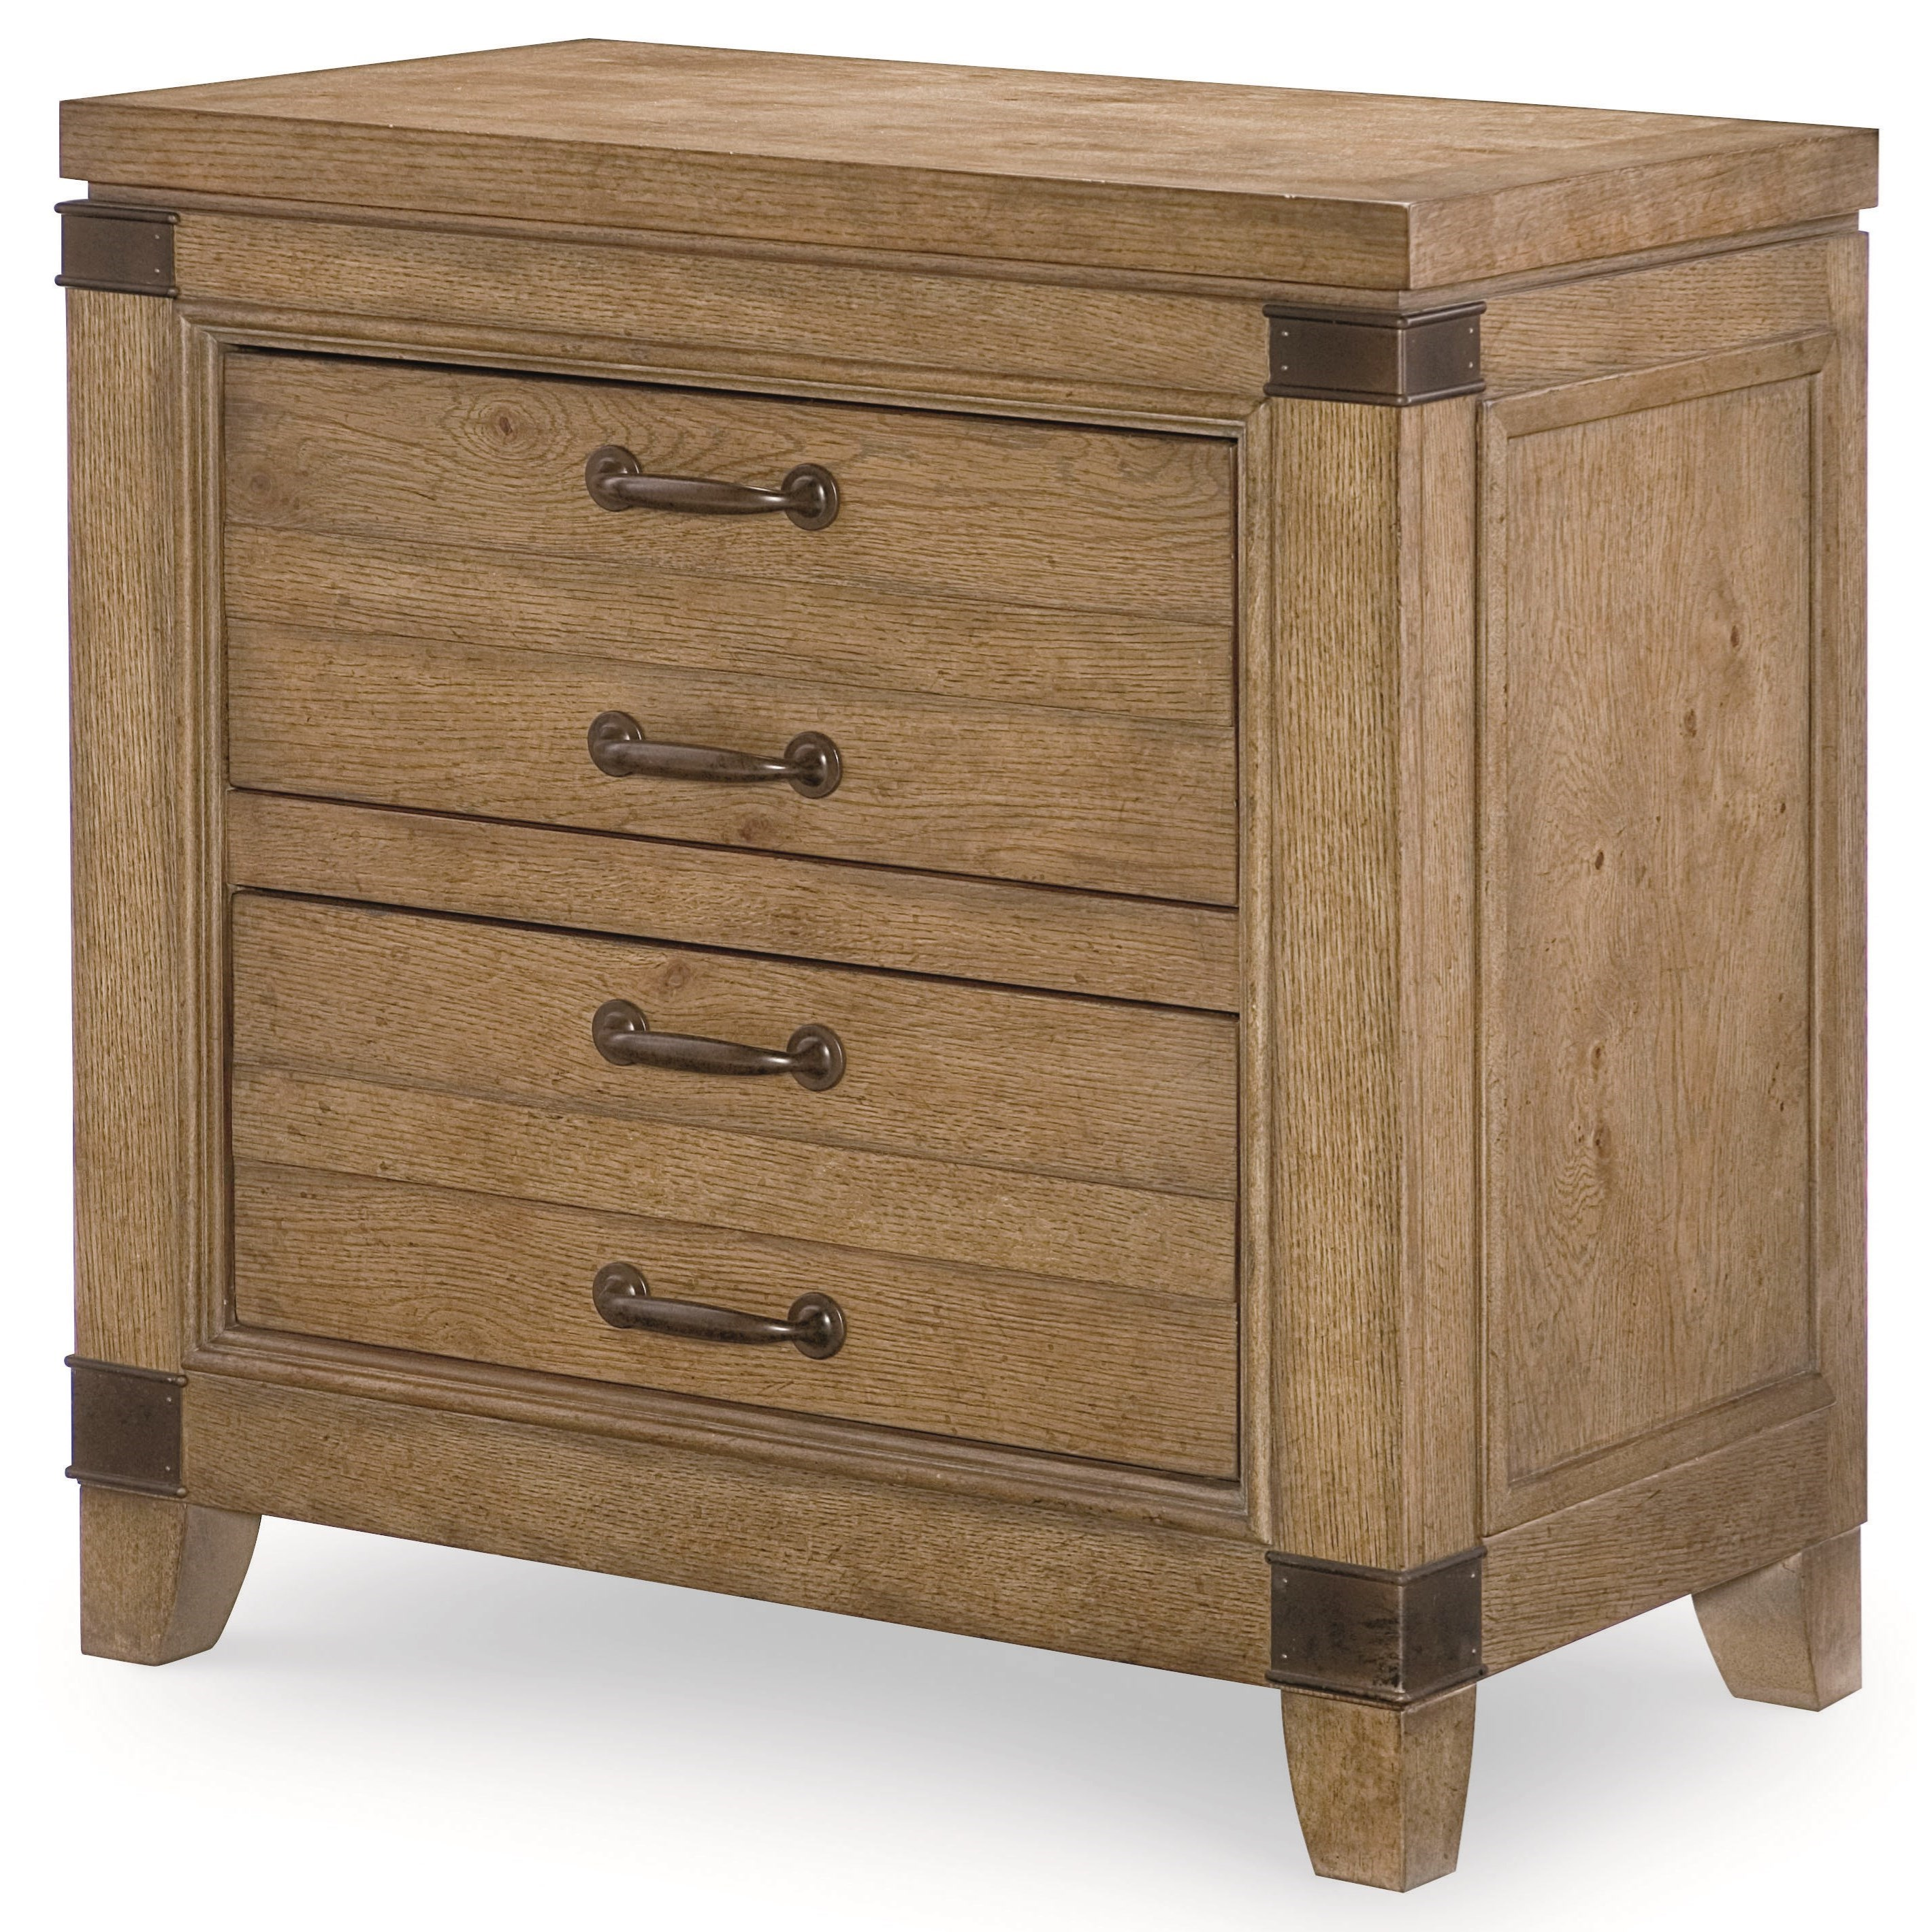 Legacy Classic Metalworks Night Stand  - Item Number: 5610-3100